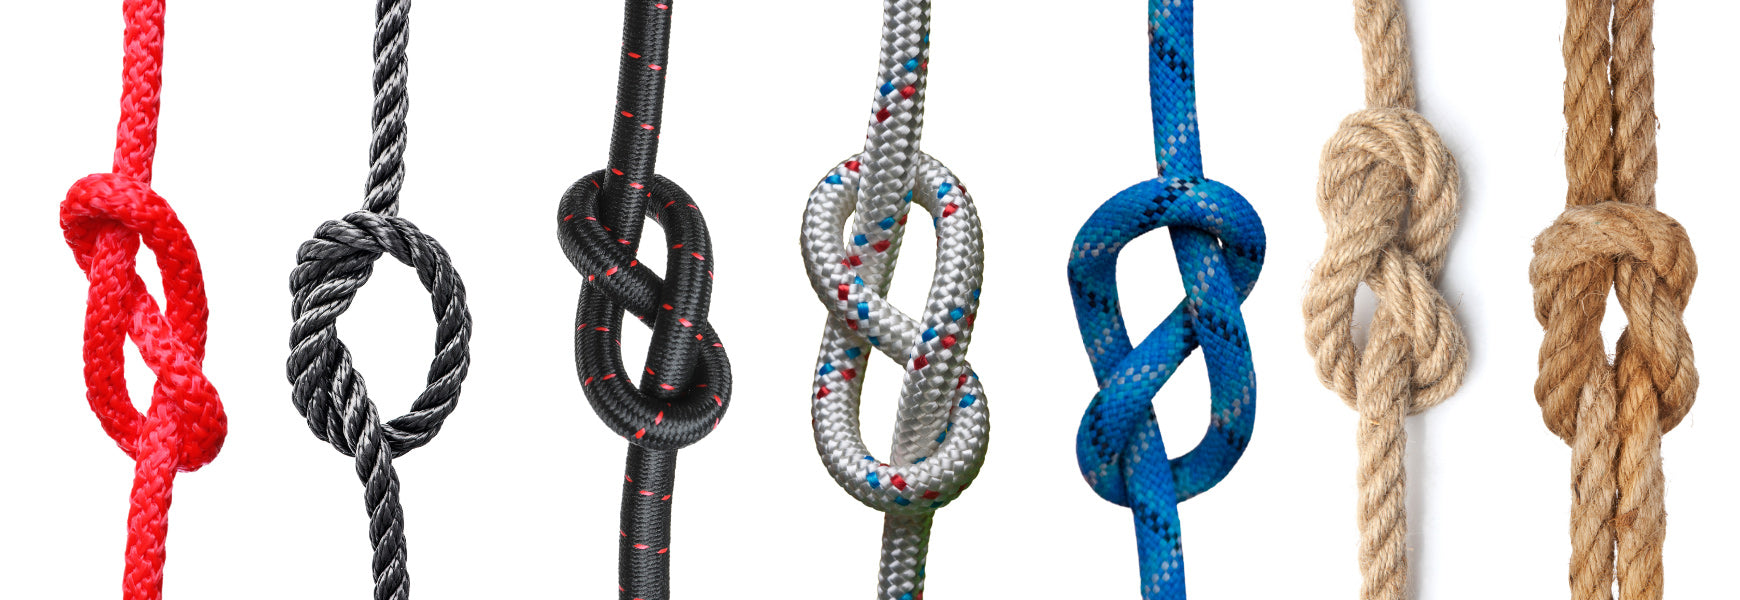 Variety of ropes